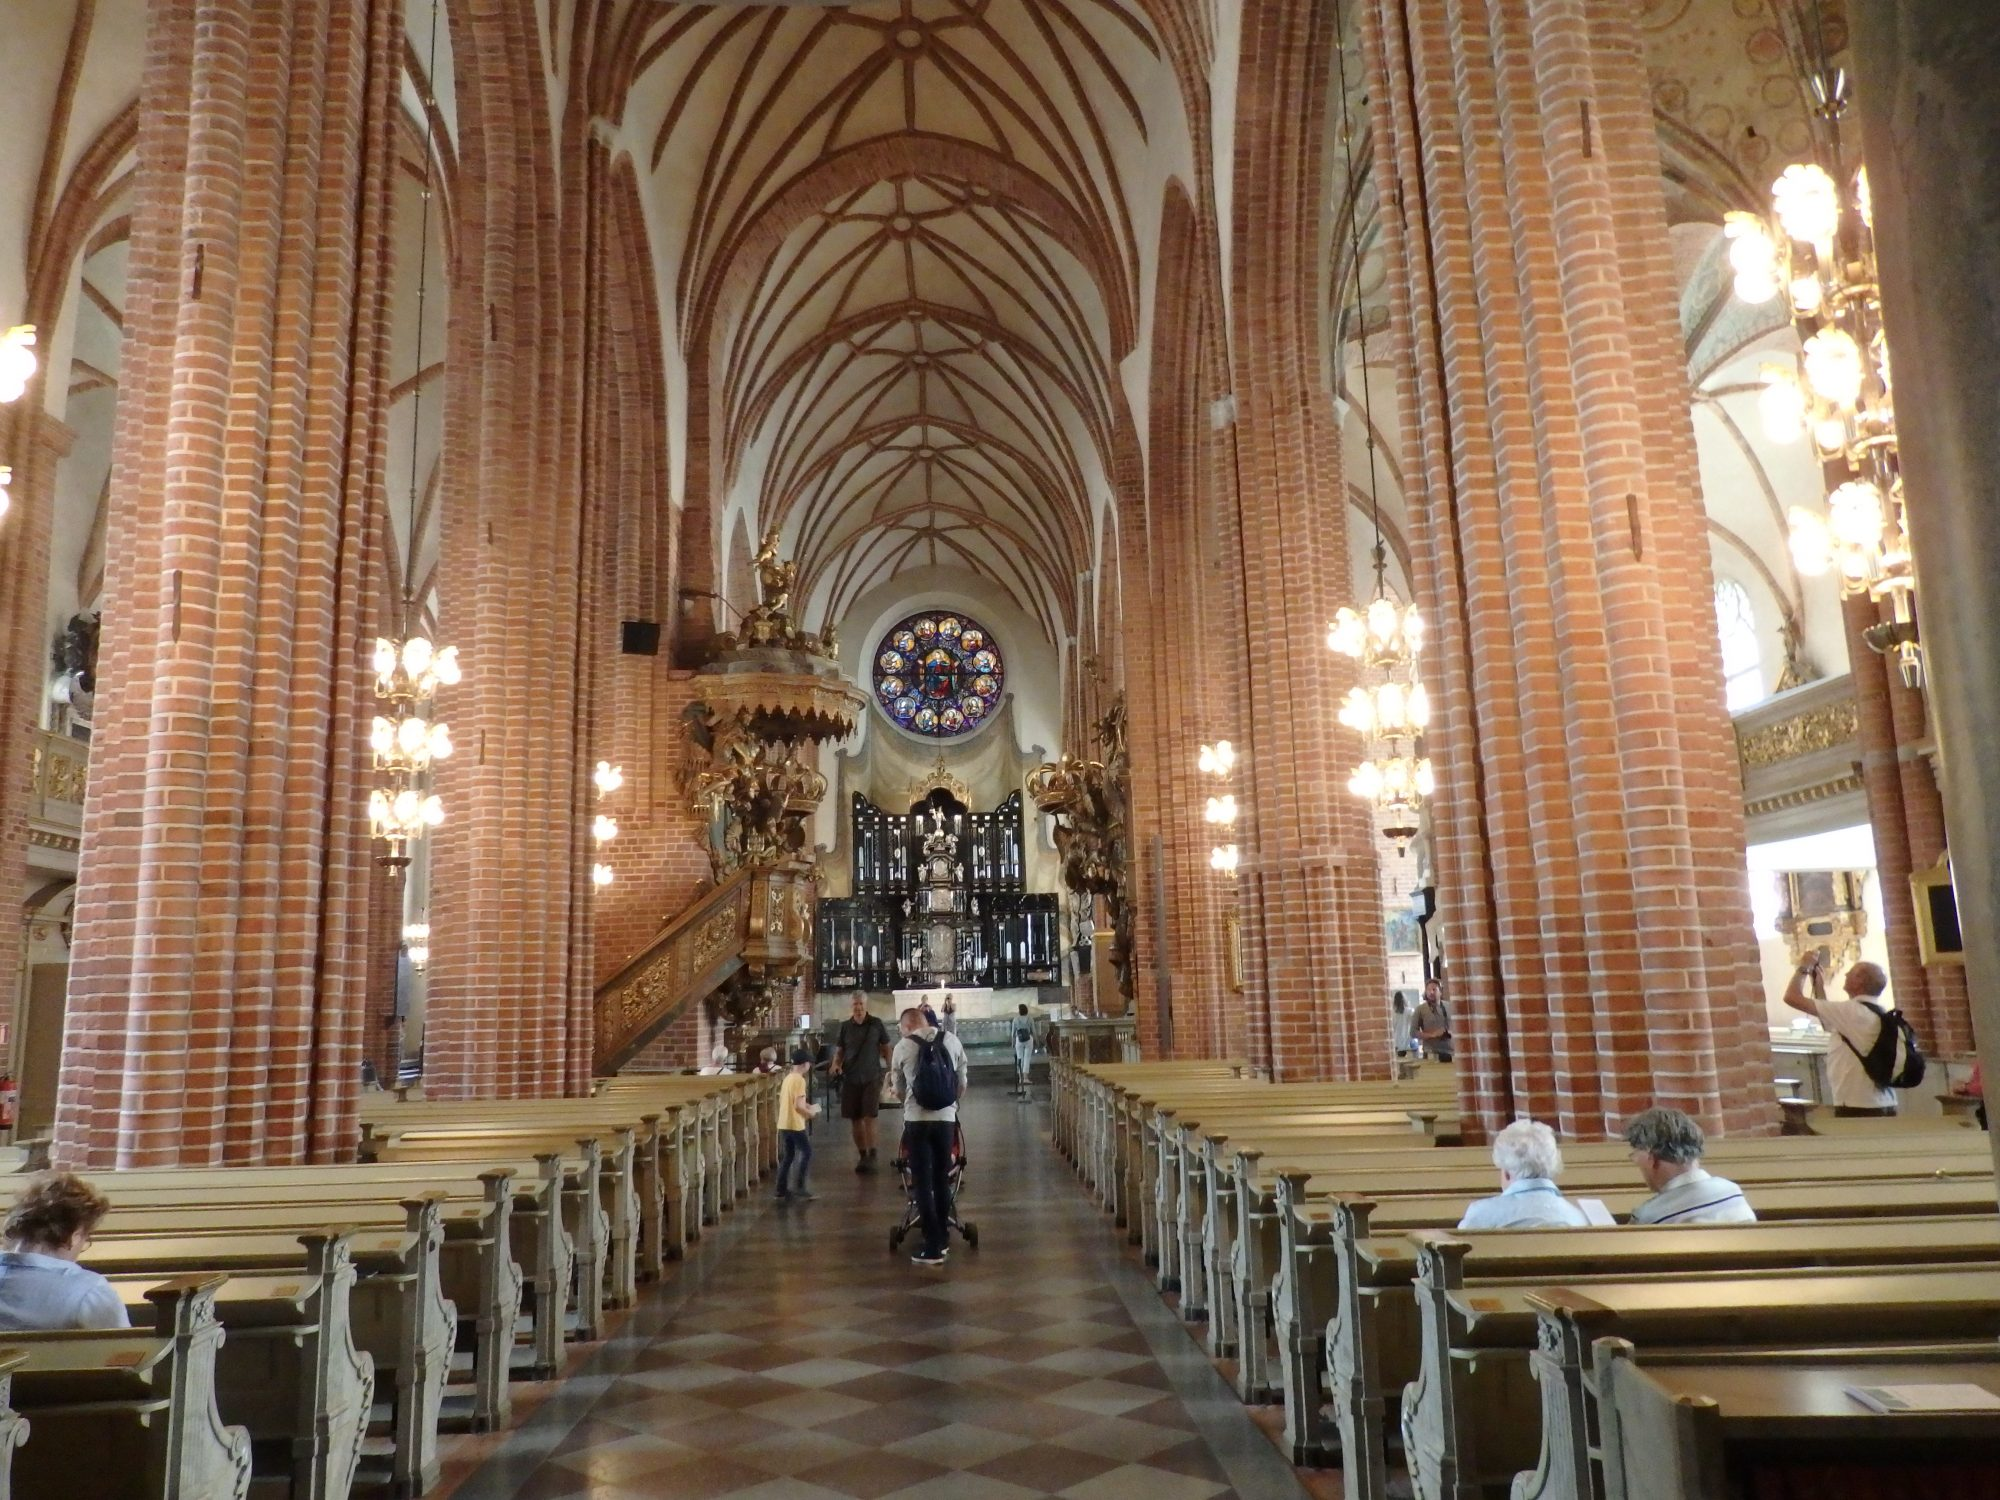 The central aisle of Storkyrkan in Stockholm